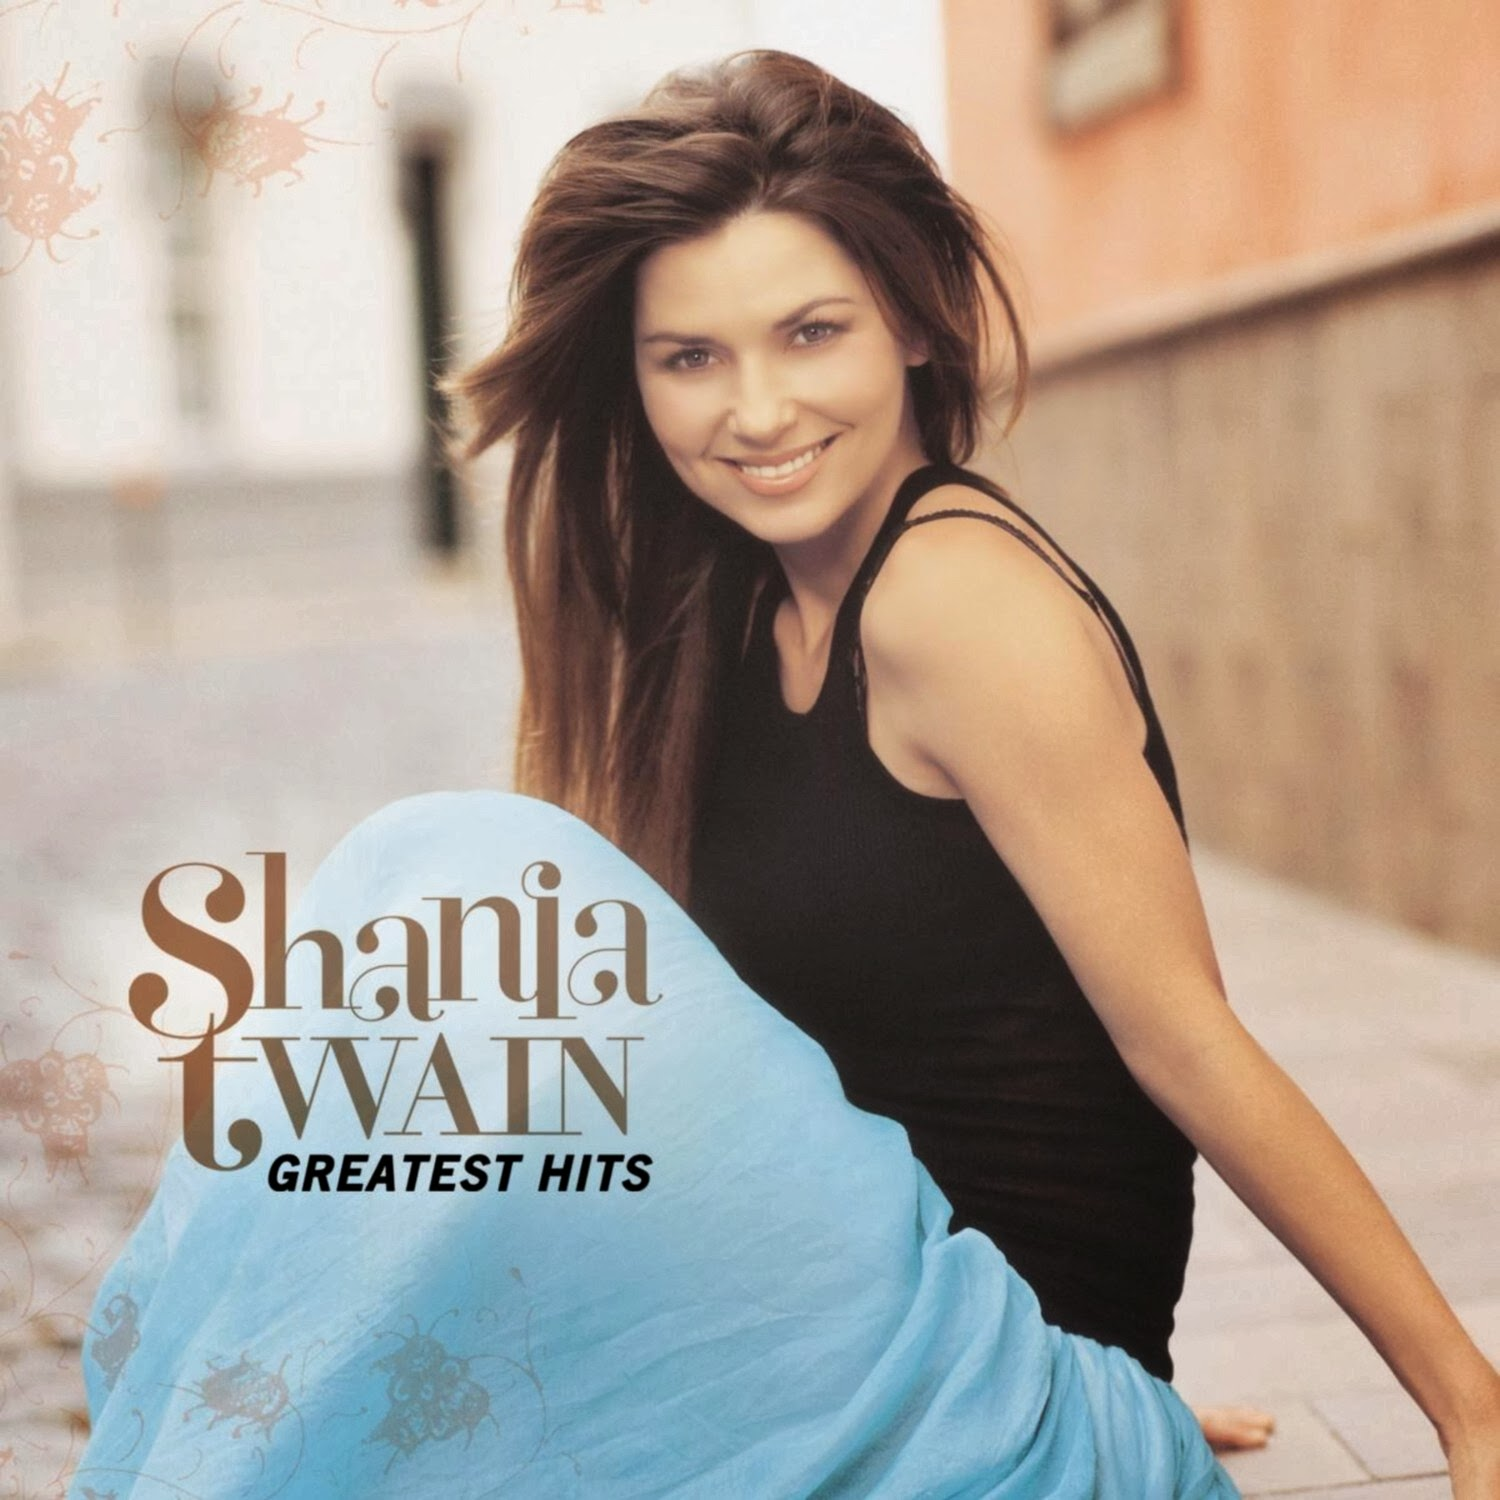 Shania Twain Discography: Greatest Hits - Compilation CD